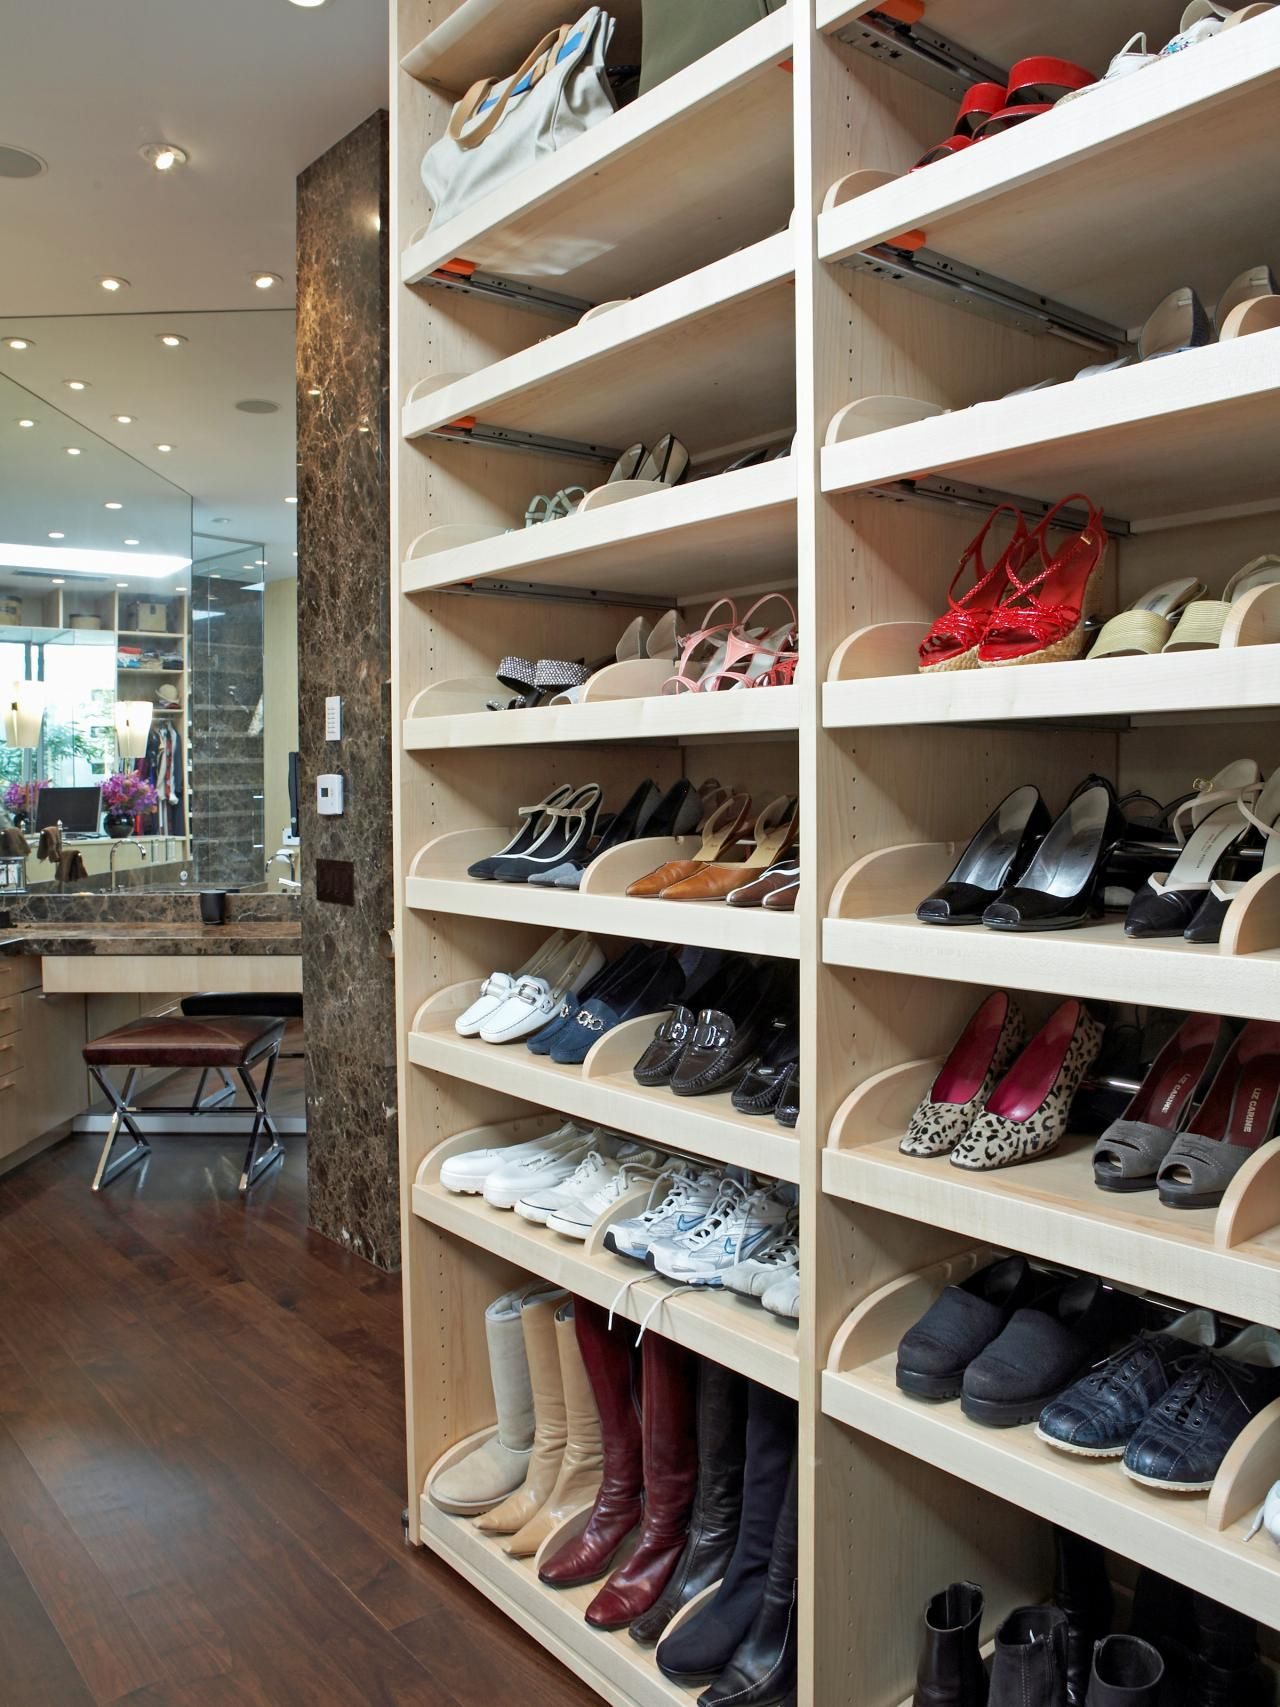 here shoes are displayed on angled shelves organized by color designer and size